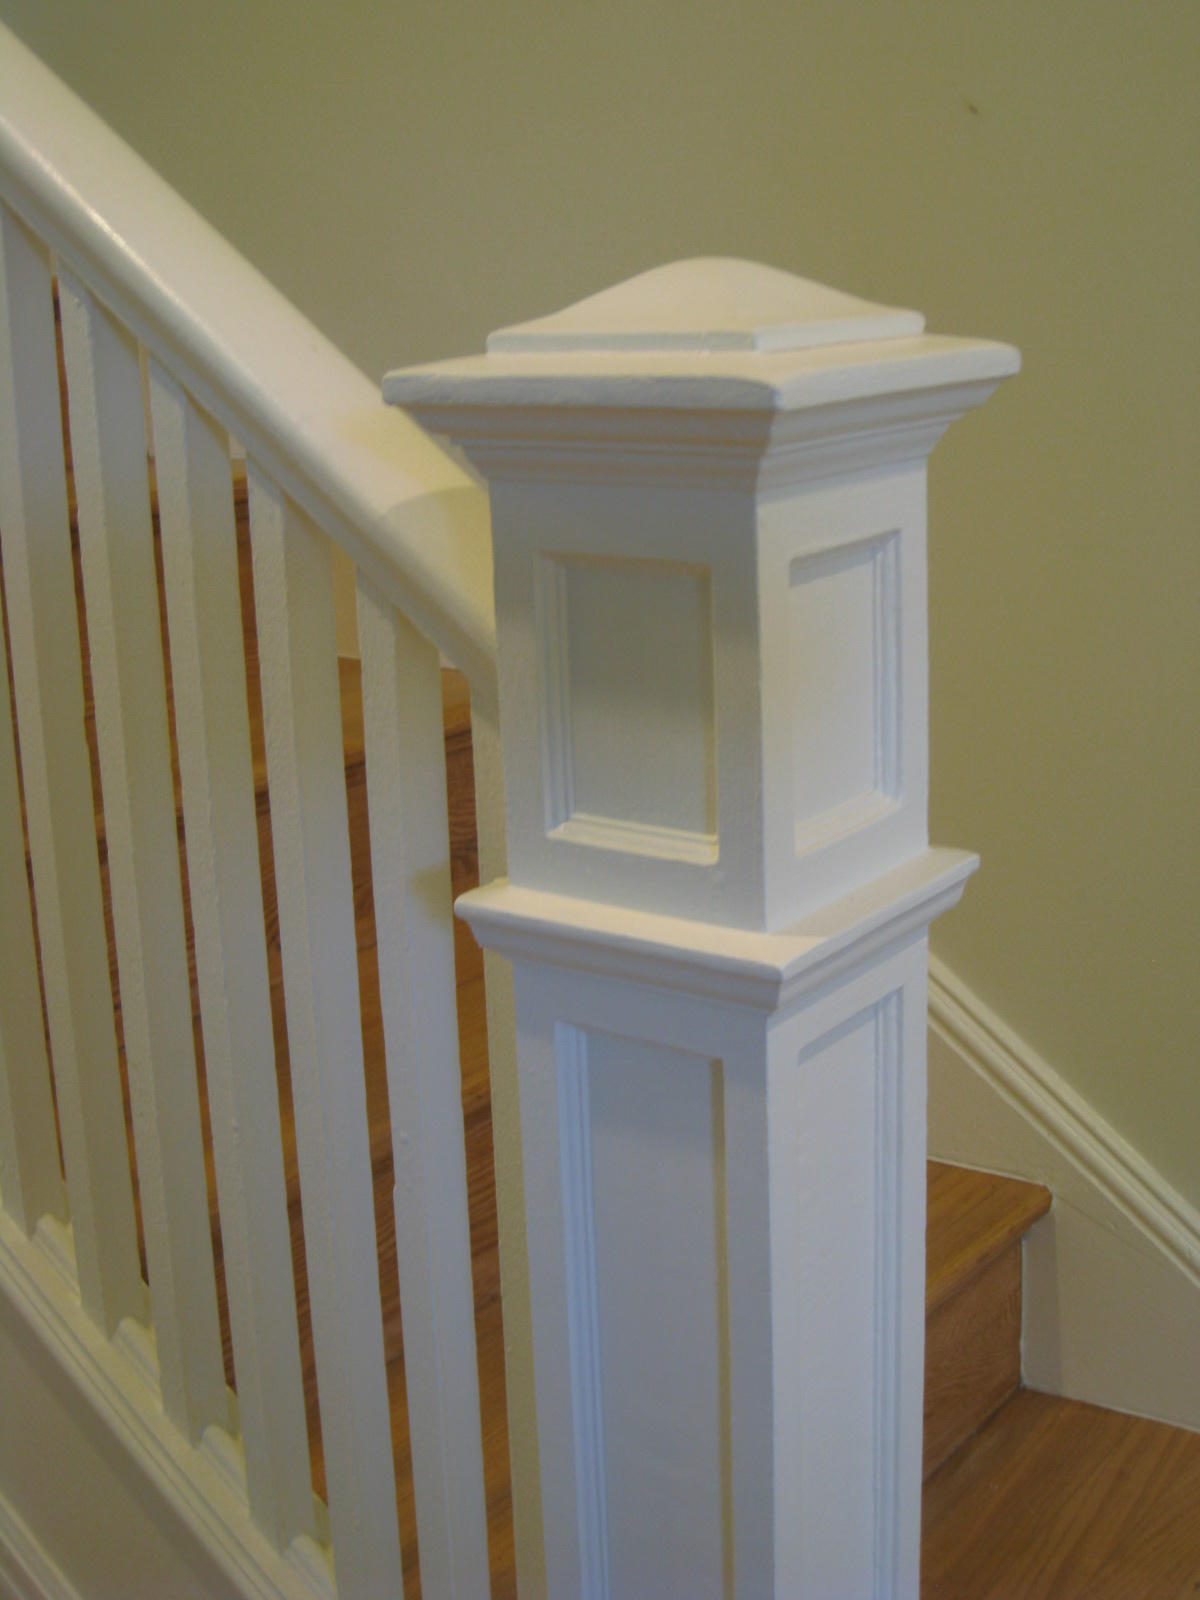 A painted newel post